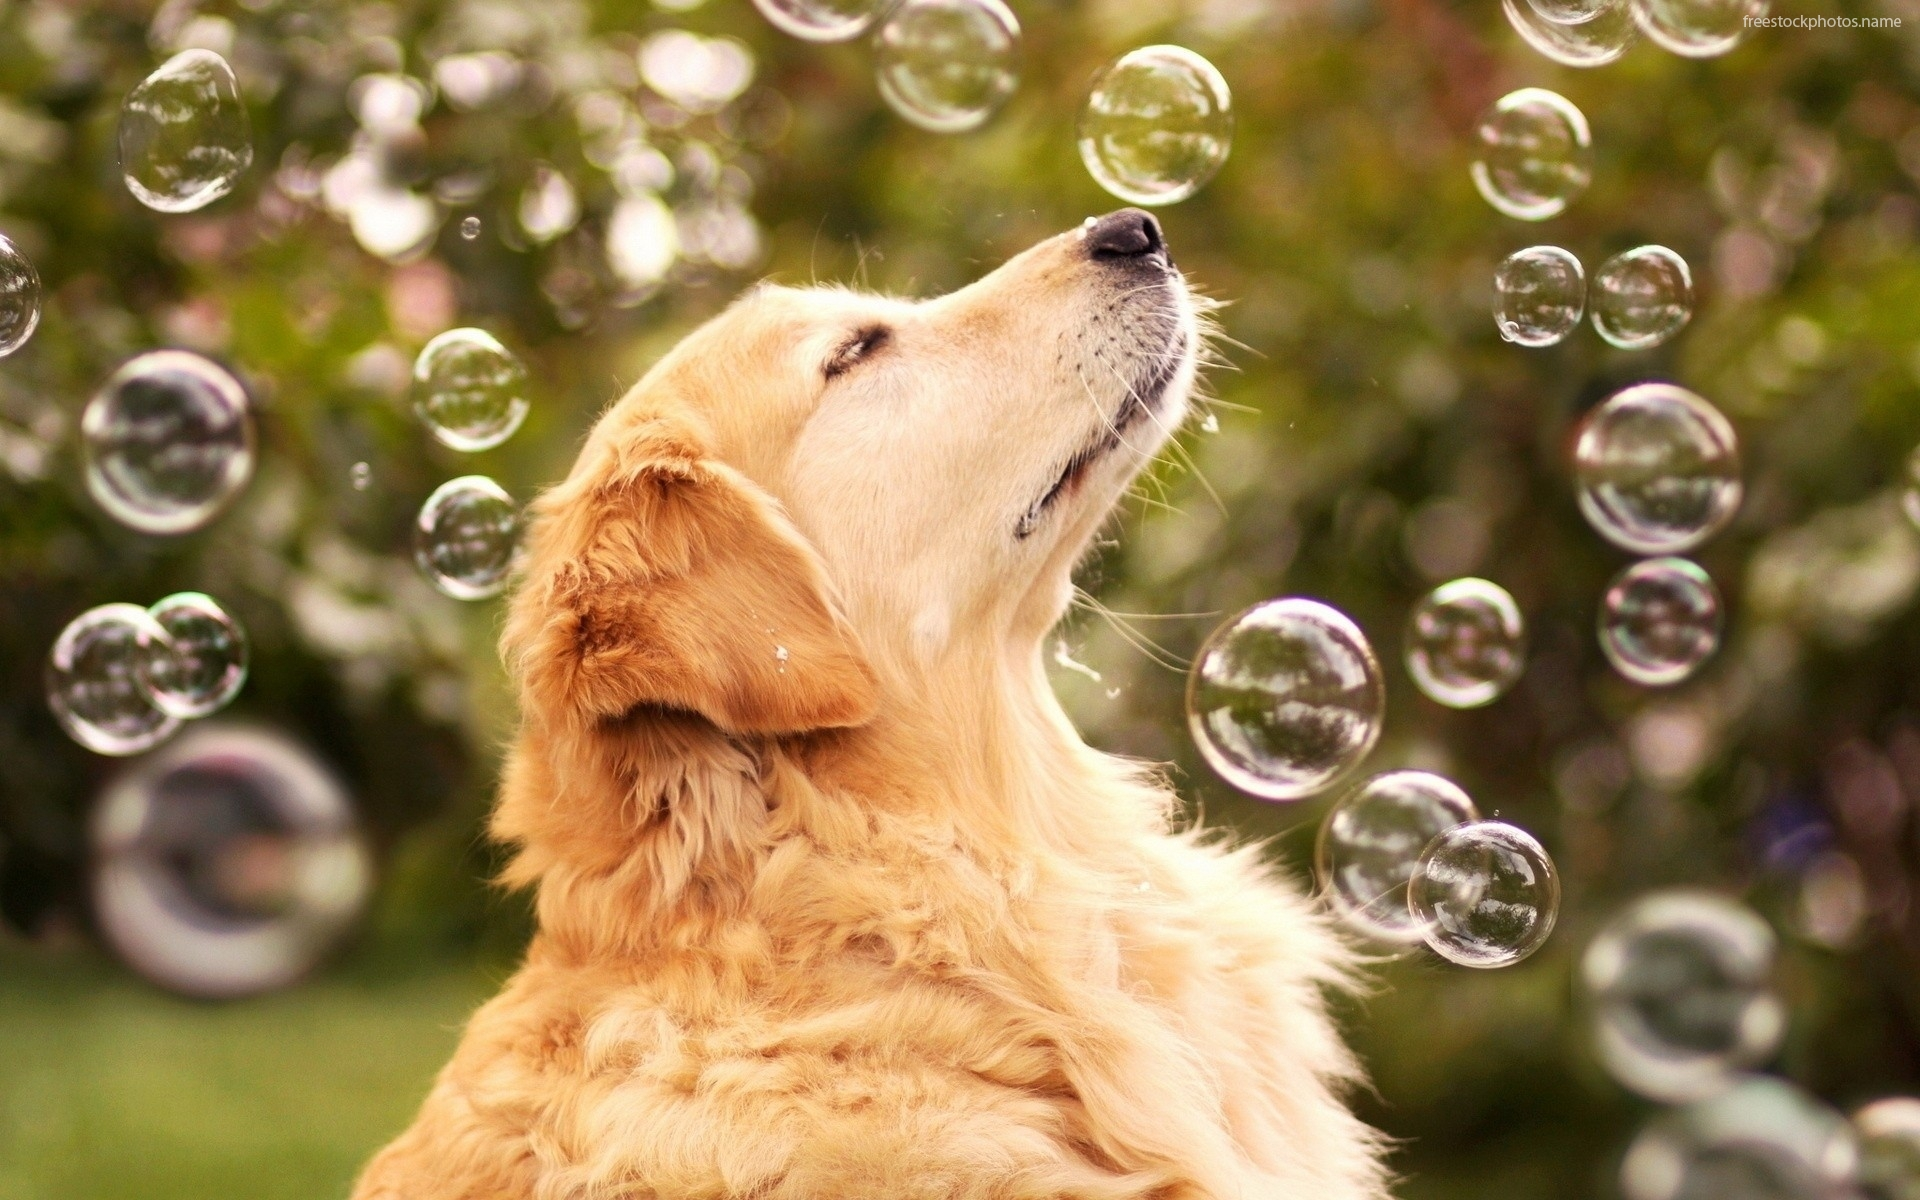 Images of a Dog Catching Soup Bubbles 216.38 Kb